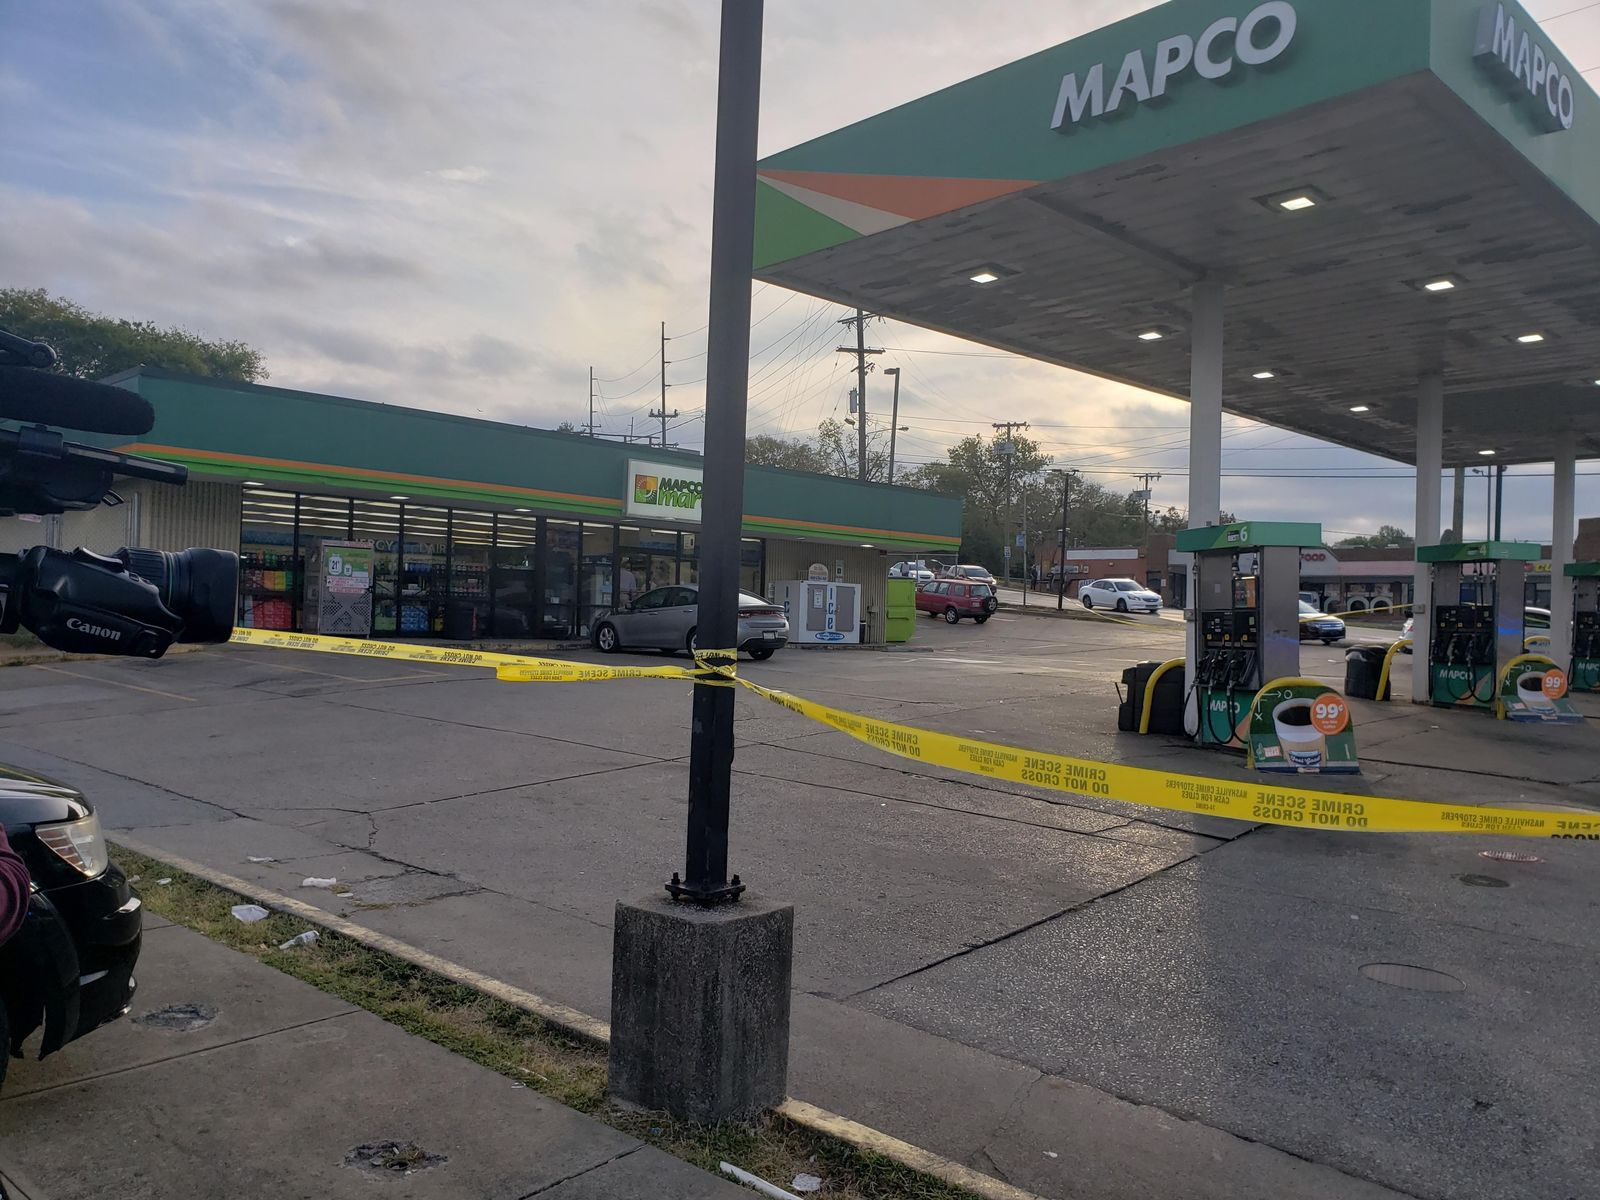 Deadly stabbing investigation underway after victim found at south Nashville gas station (FOX 17 News)